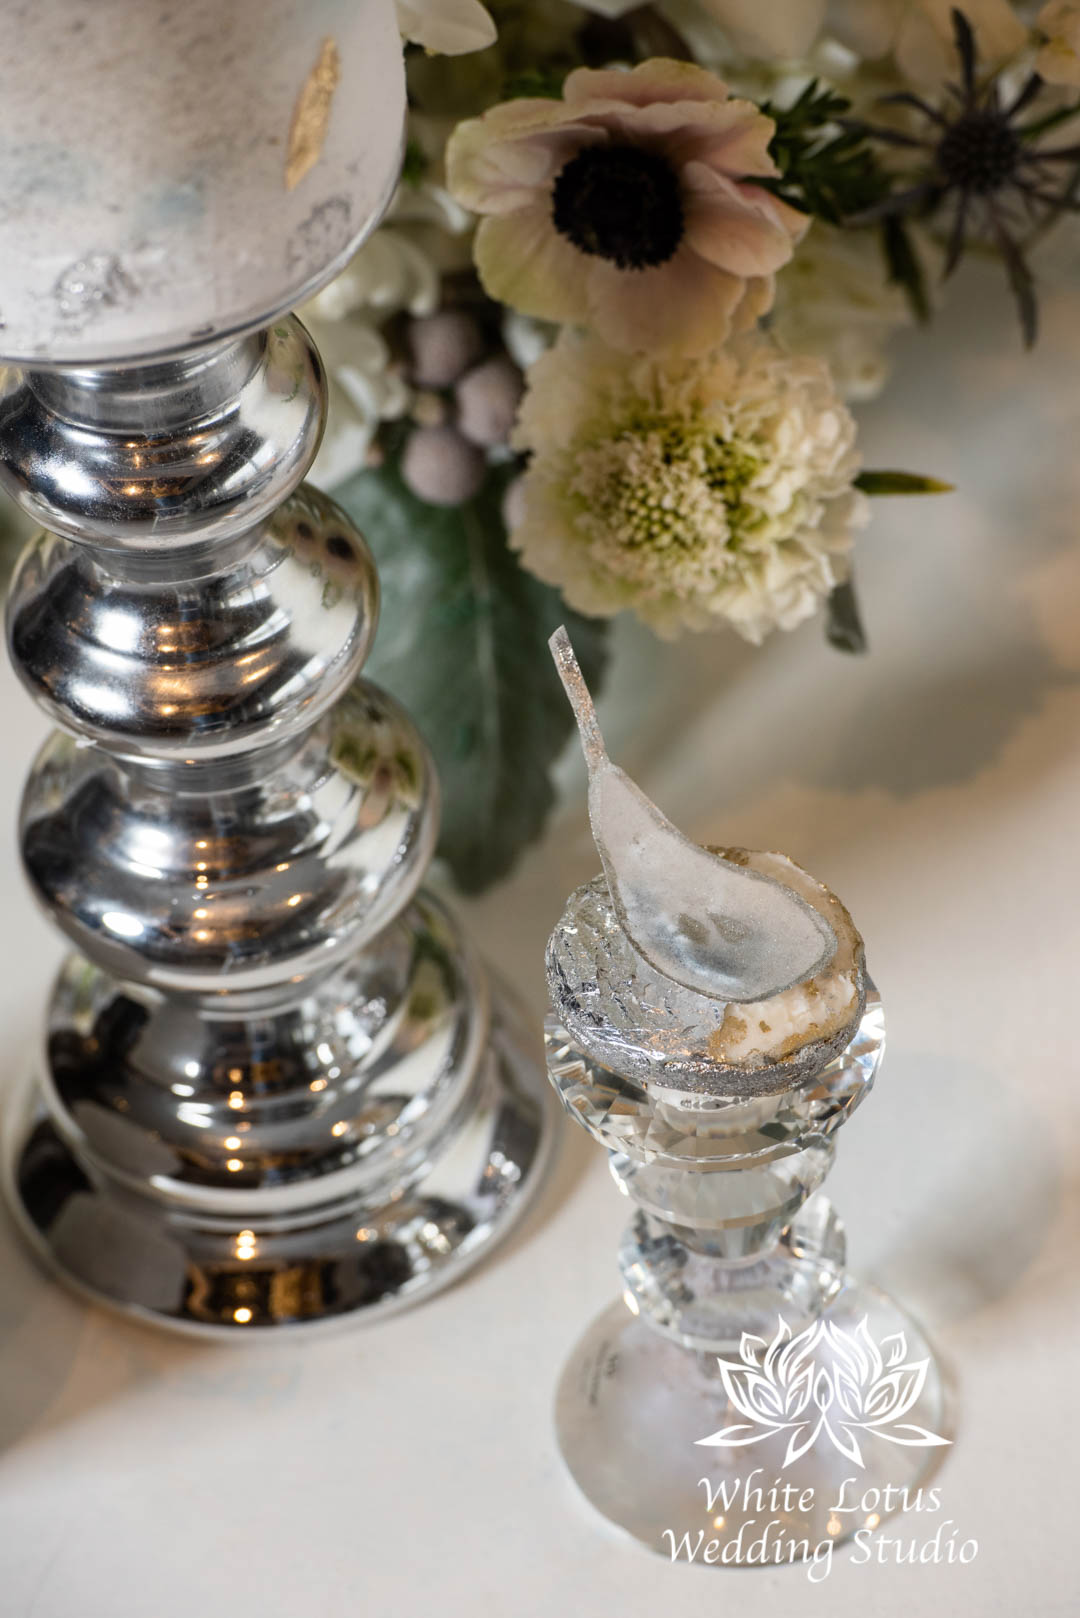 093- GLAM WINTERLUXE WEDDING INSPIRATION